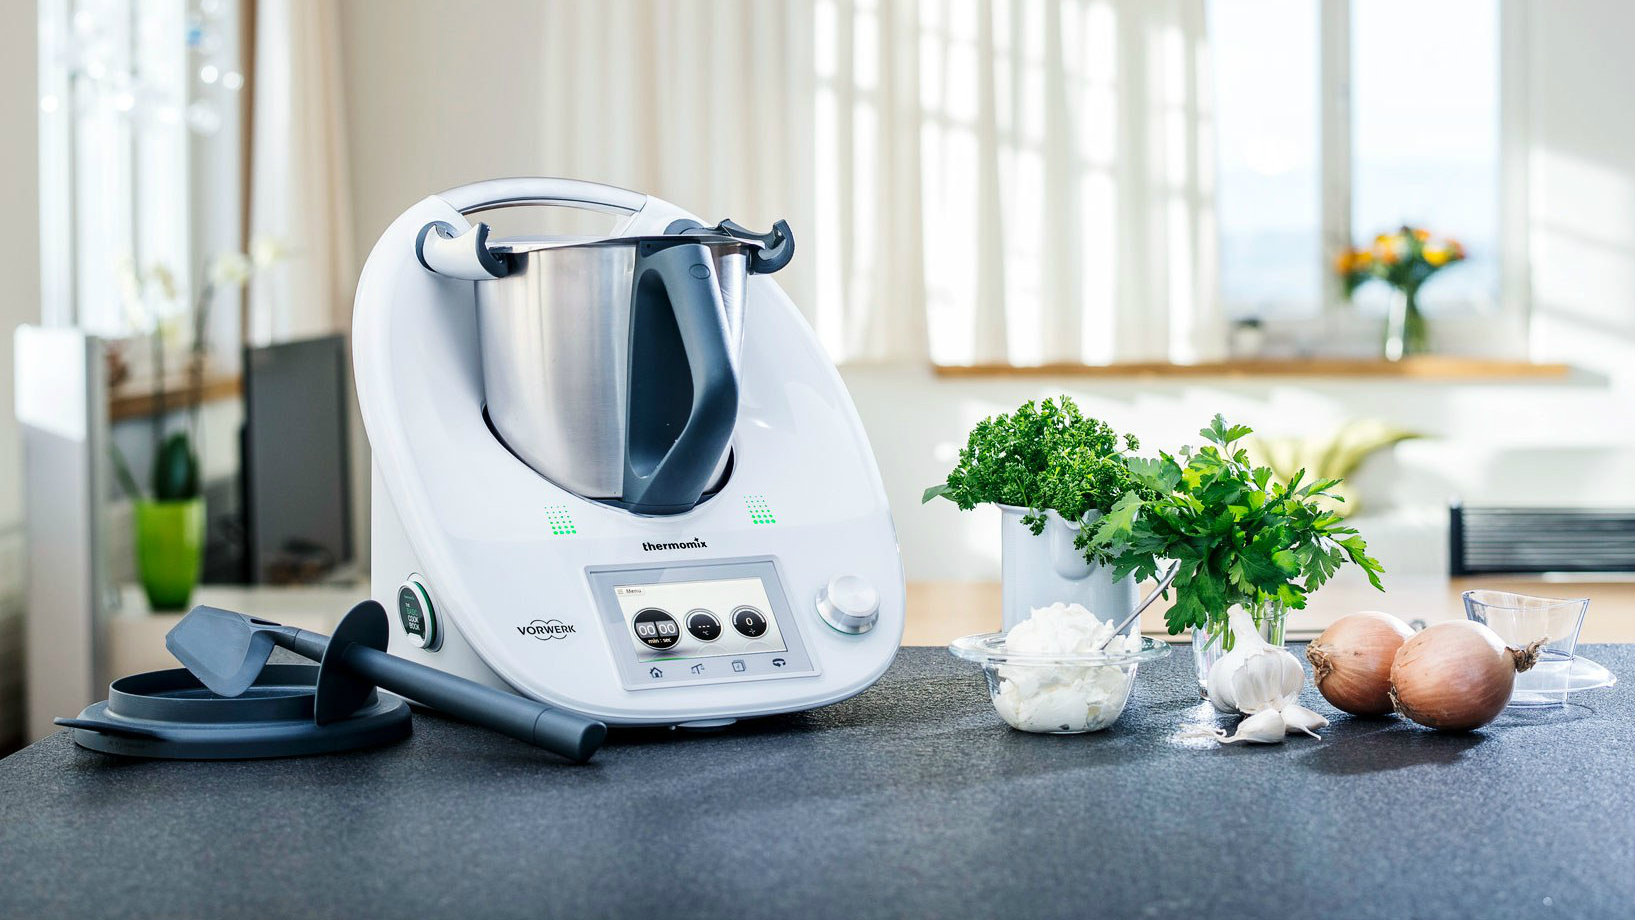 Thermomix Vorwerk S 1 450 Kitchen Appliance Is Coming